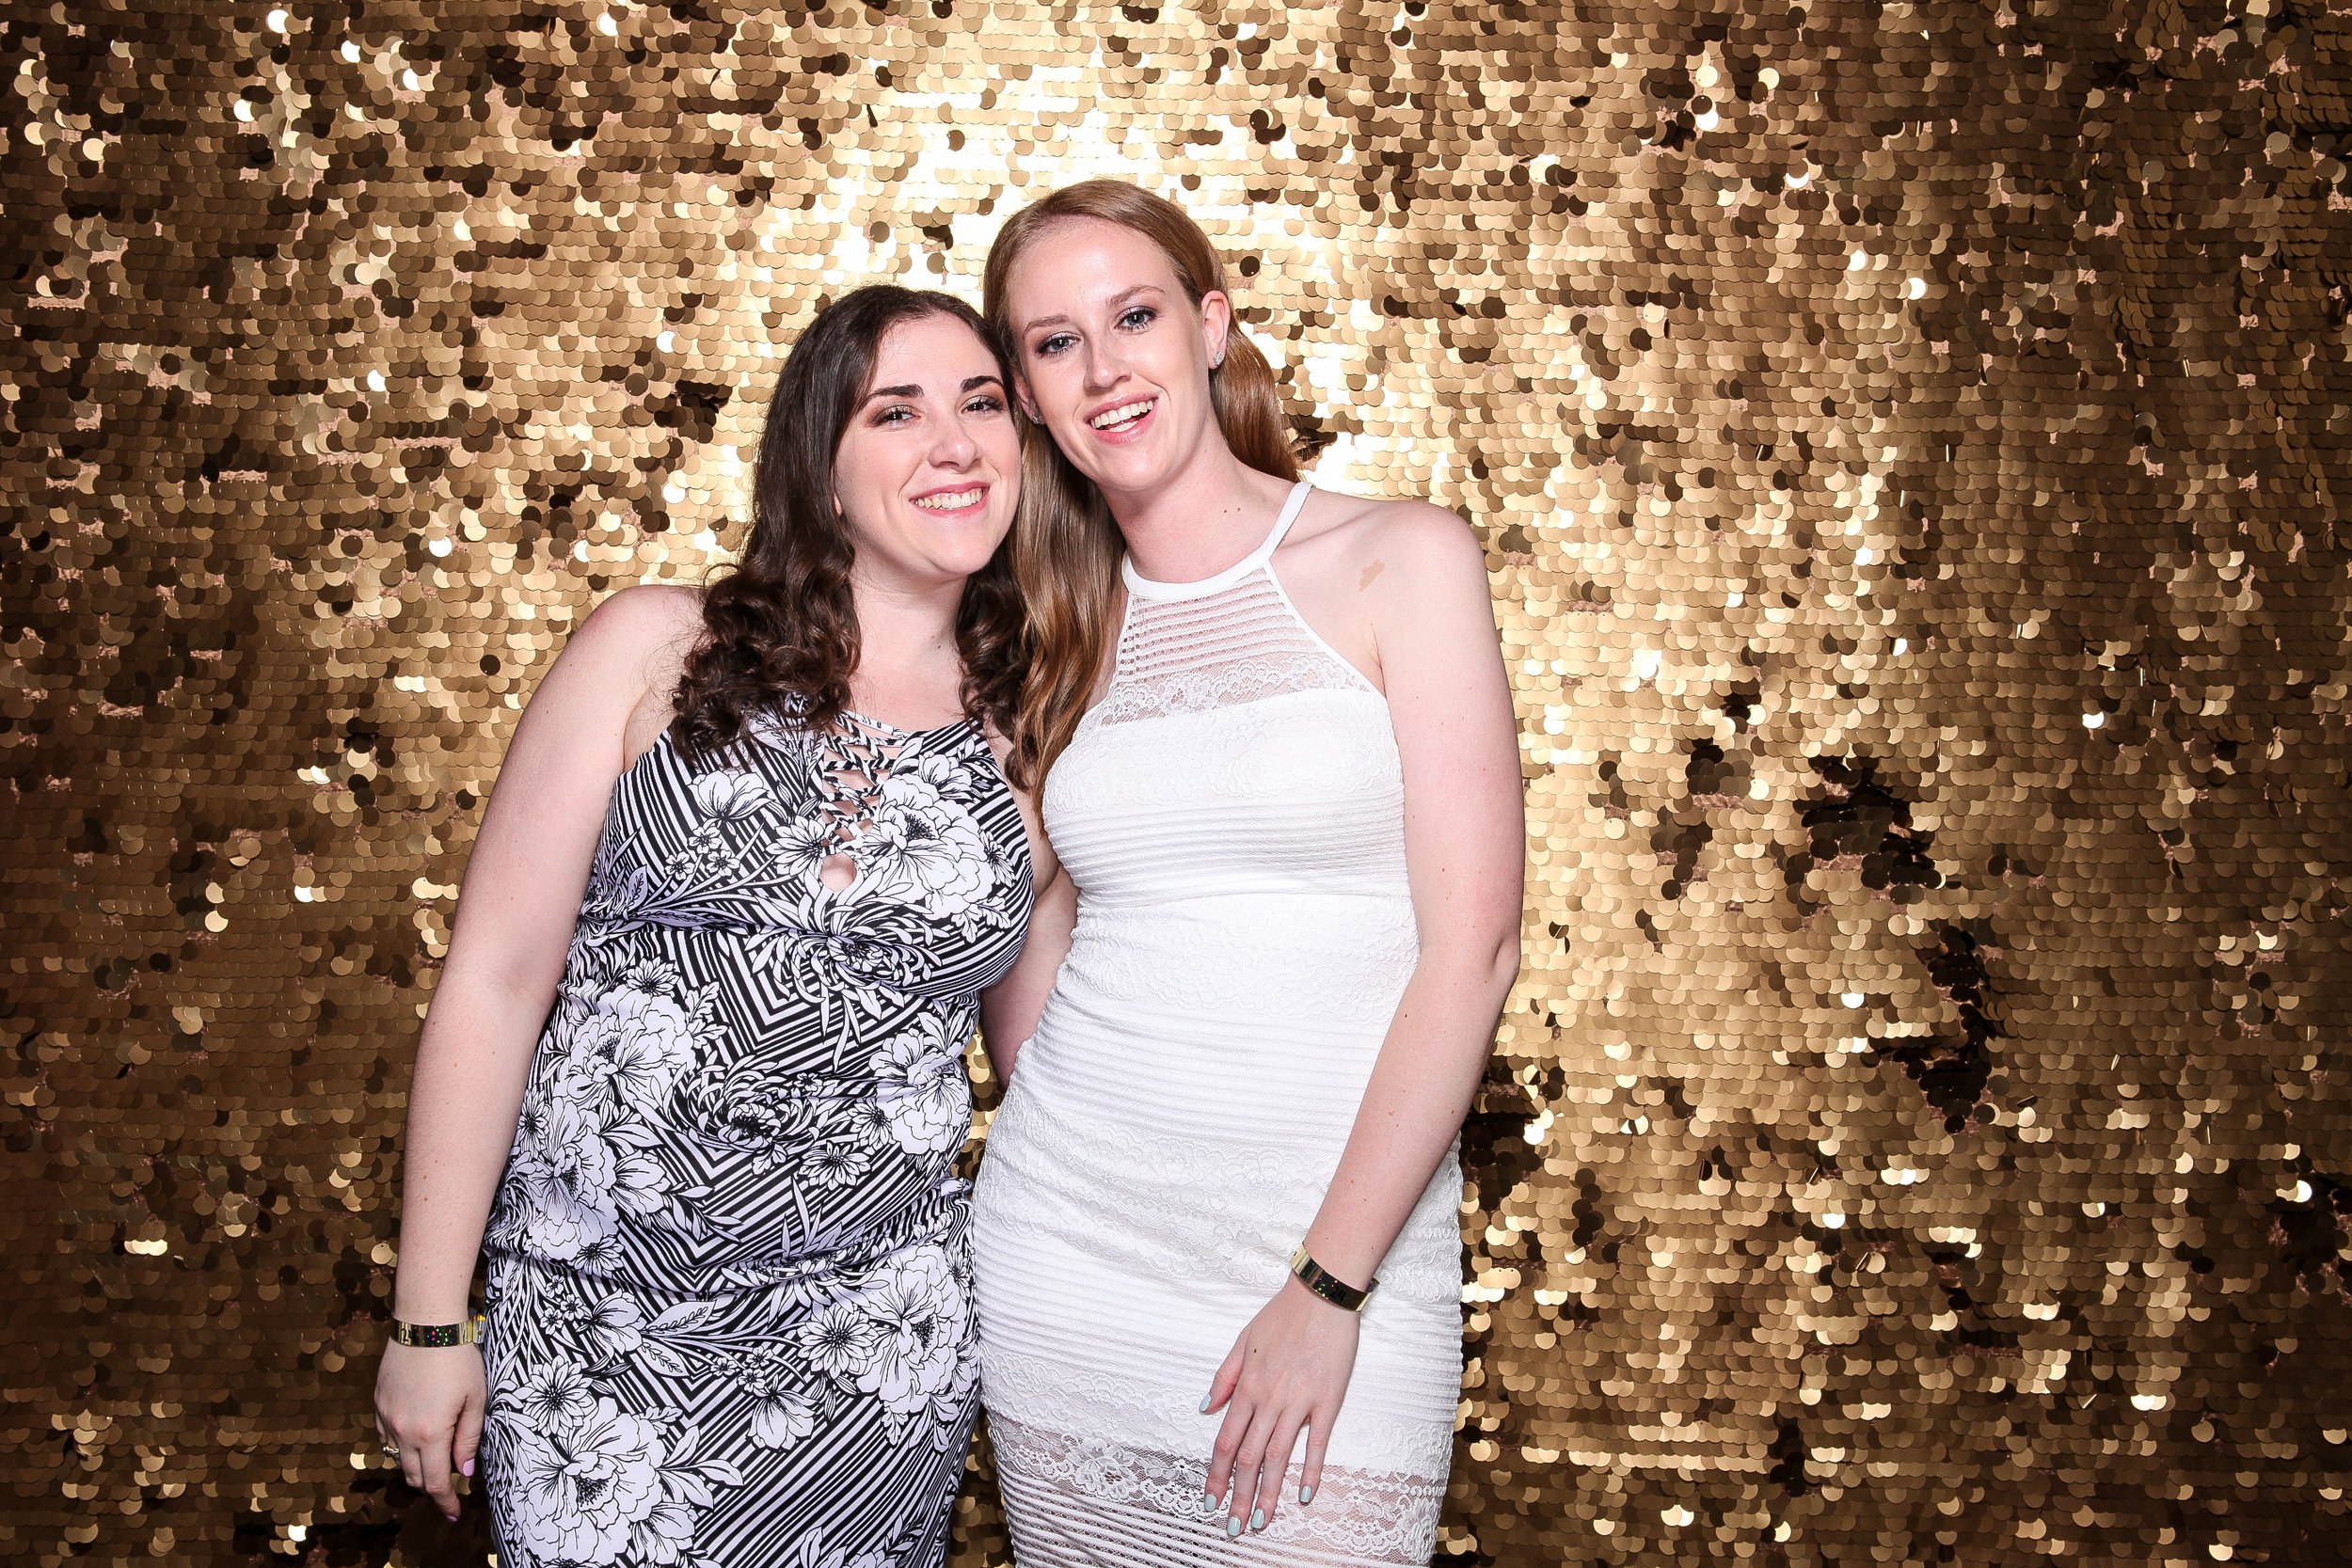 20190503_Adelphi_Senior_Formal-283.jpg